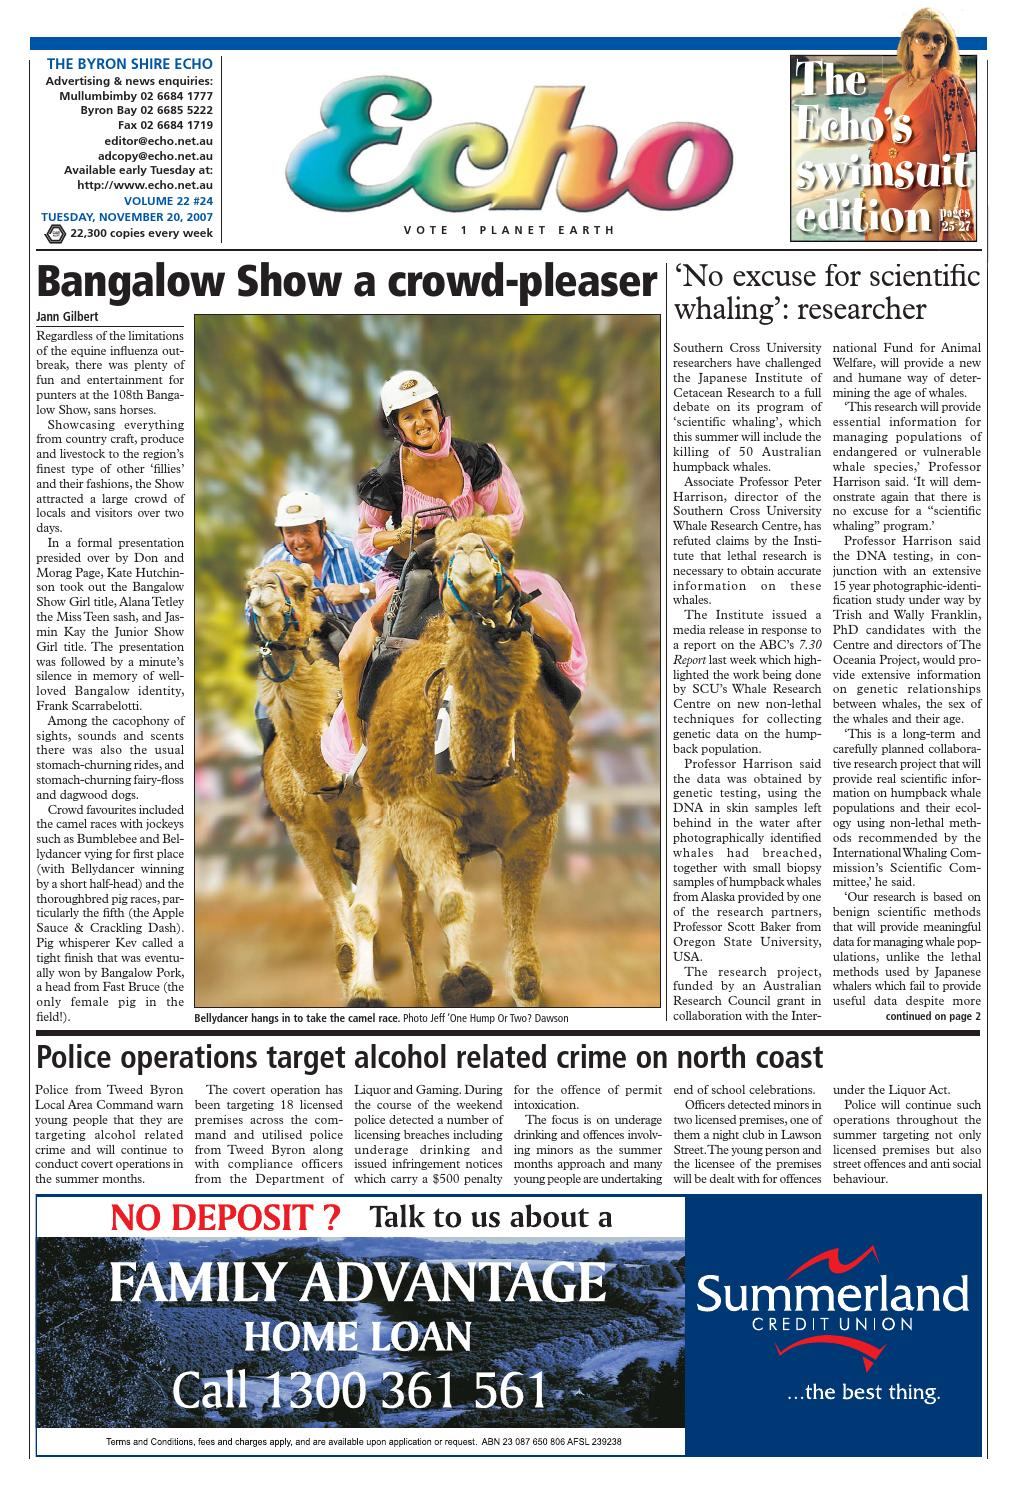 Byron Shire Echo Issue 2224 20 11 2007 By Publications Issuu Sydney Xmas Lights 4 Drysdale Circuit Beaumont Hills Christmas